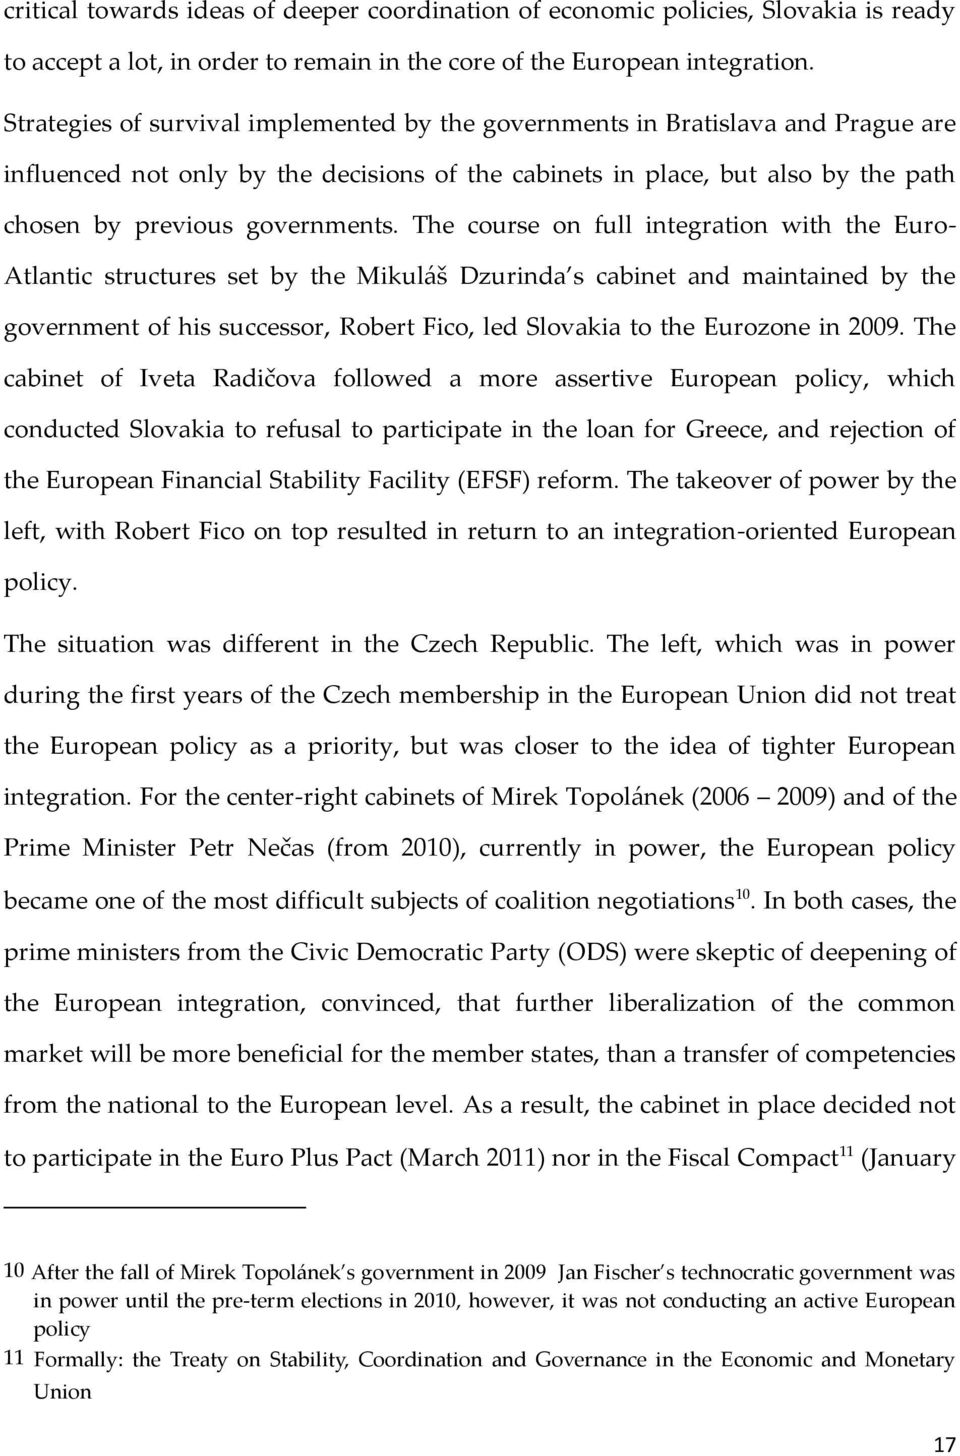 The course on full integration with the Euro- Atlantic structures set by the Mikuláš Dzurinda s cabinet and maintained by the government of his successor, Robert Fico, led Slovakia to the Eurozone in